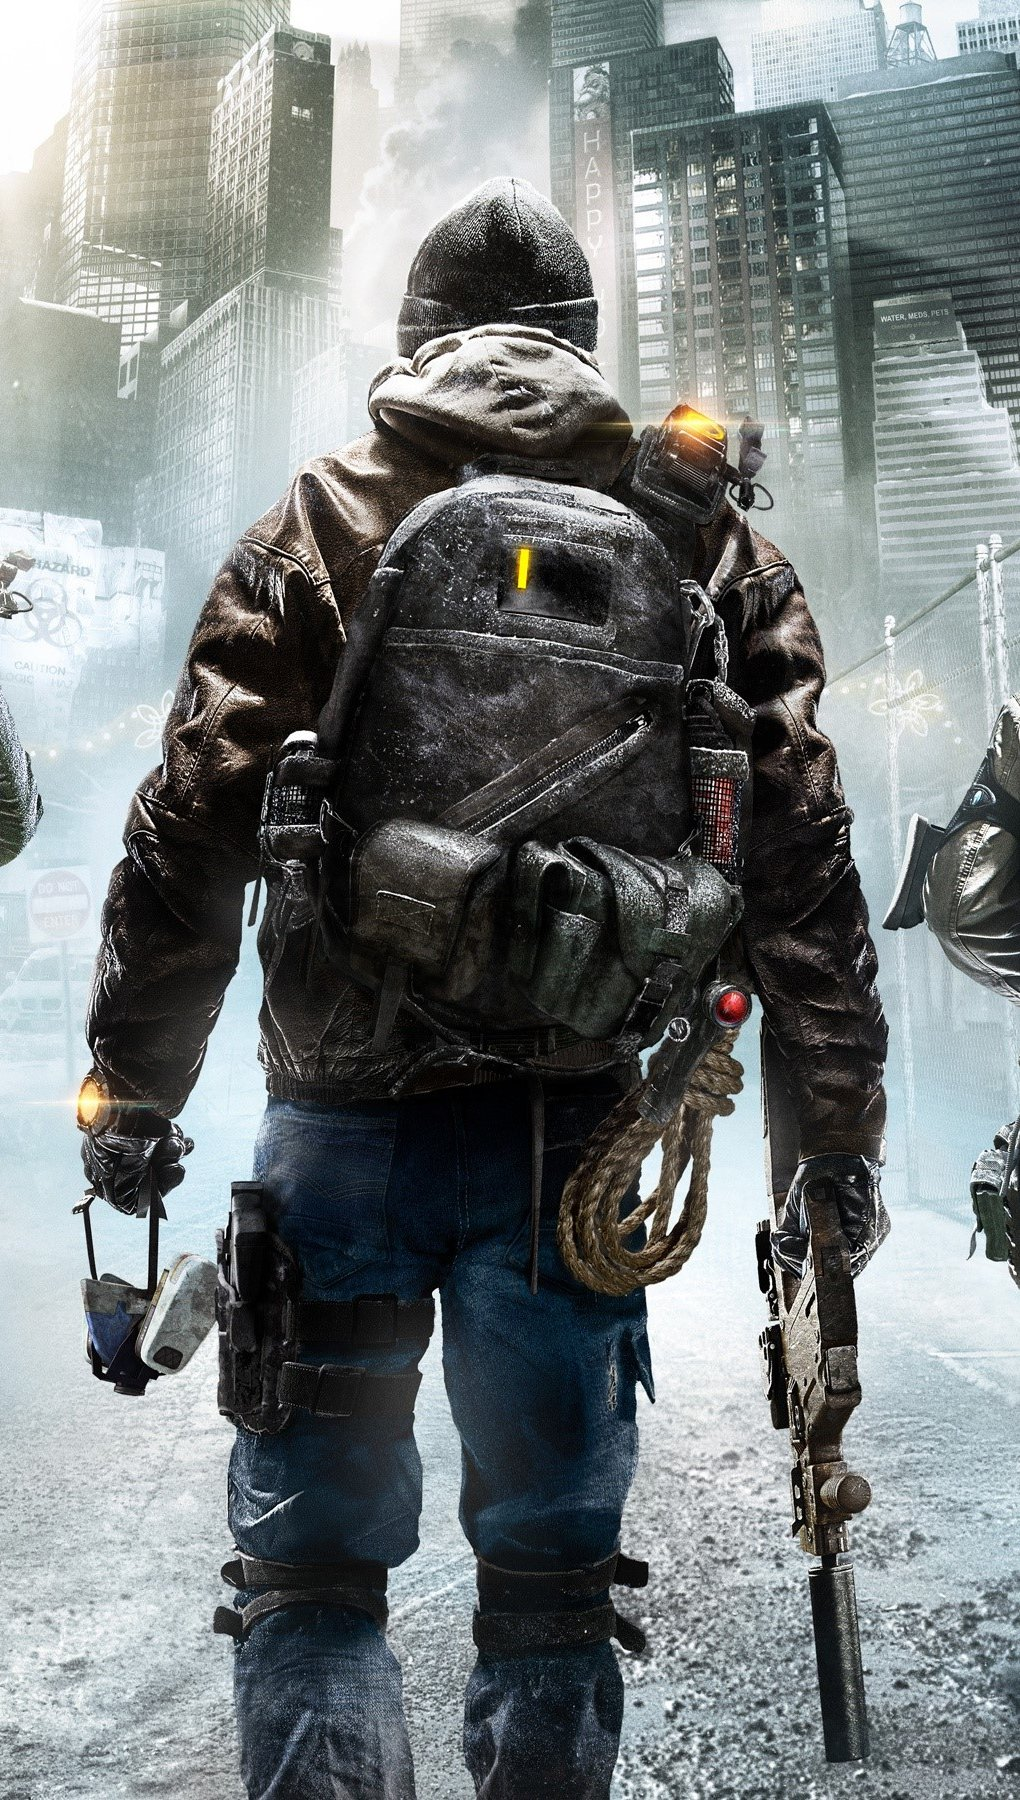 Fondos de pantalla Tom Clancy's: The division 2015 Vertical